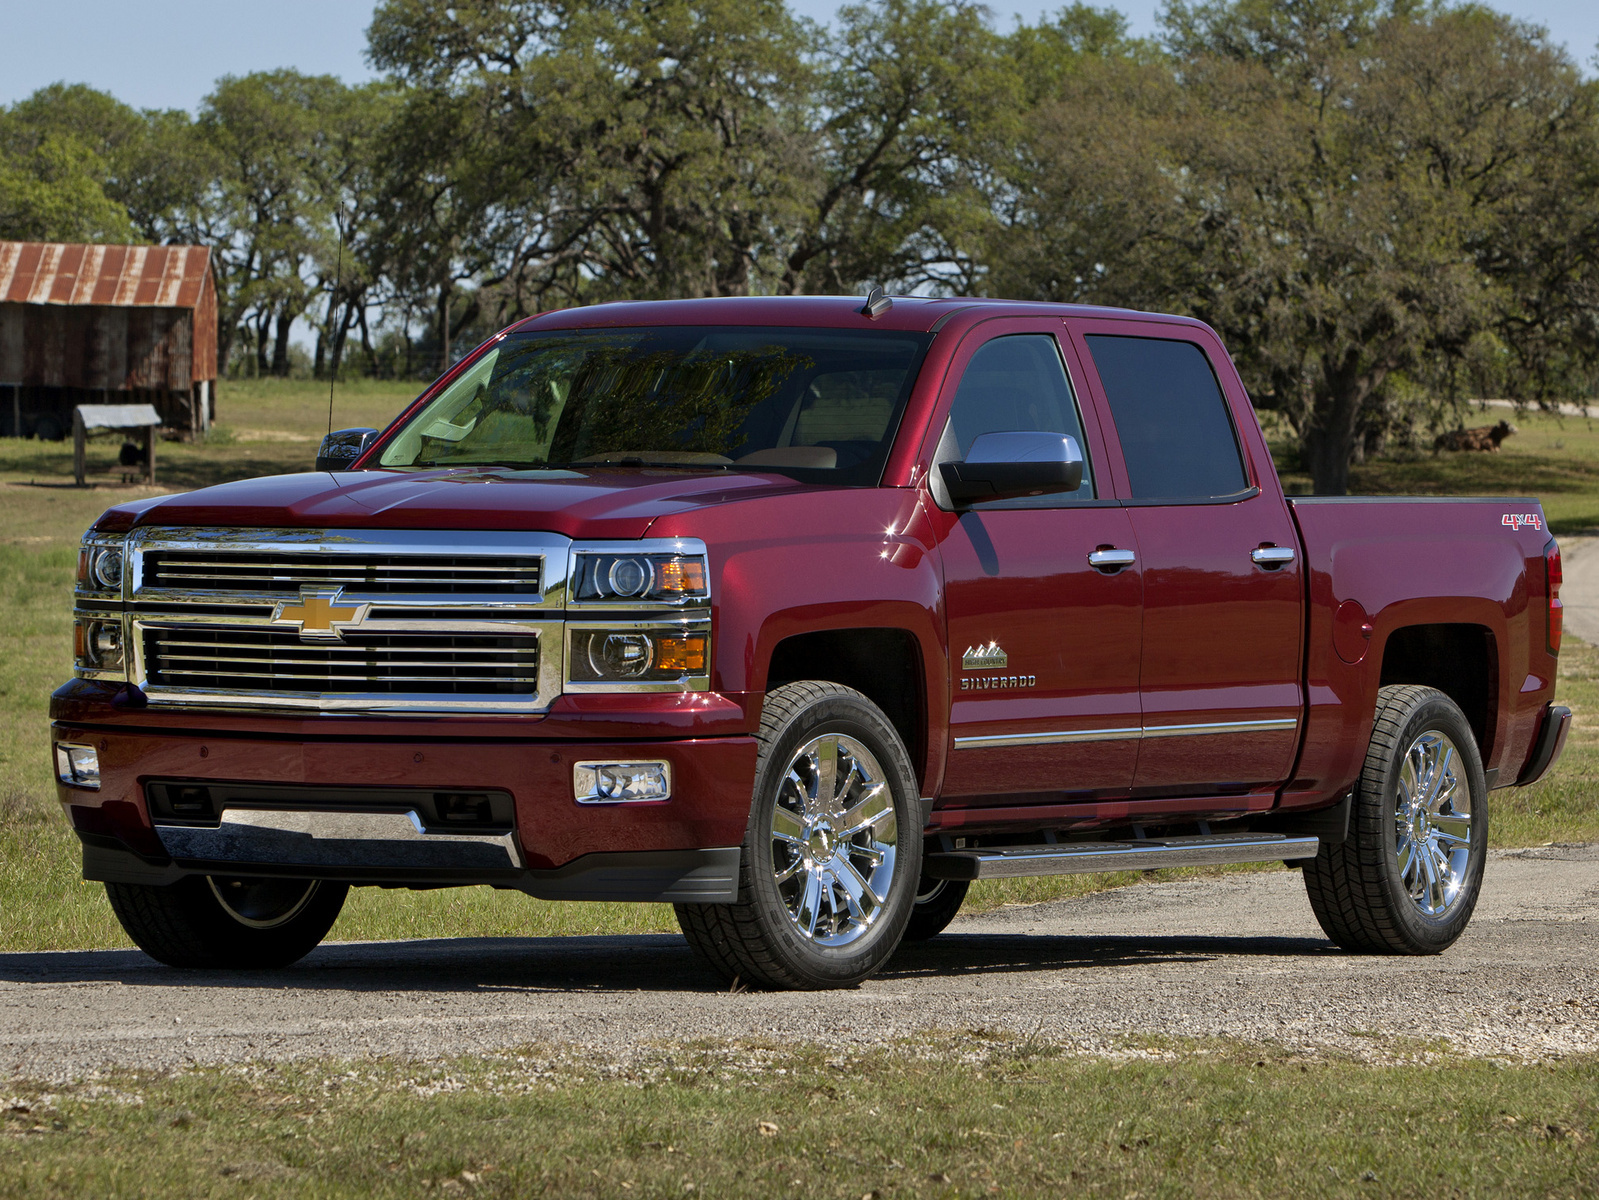 2014 chevrolet silverado 1500 test drive review cargurus. Black Bedroom Furniture Sets. Home Design Ideas